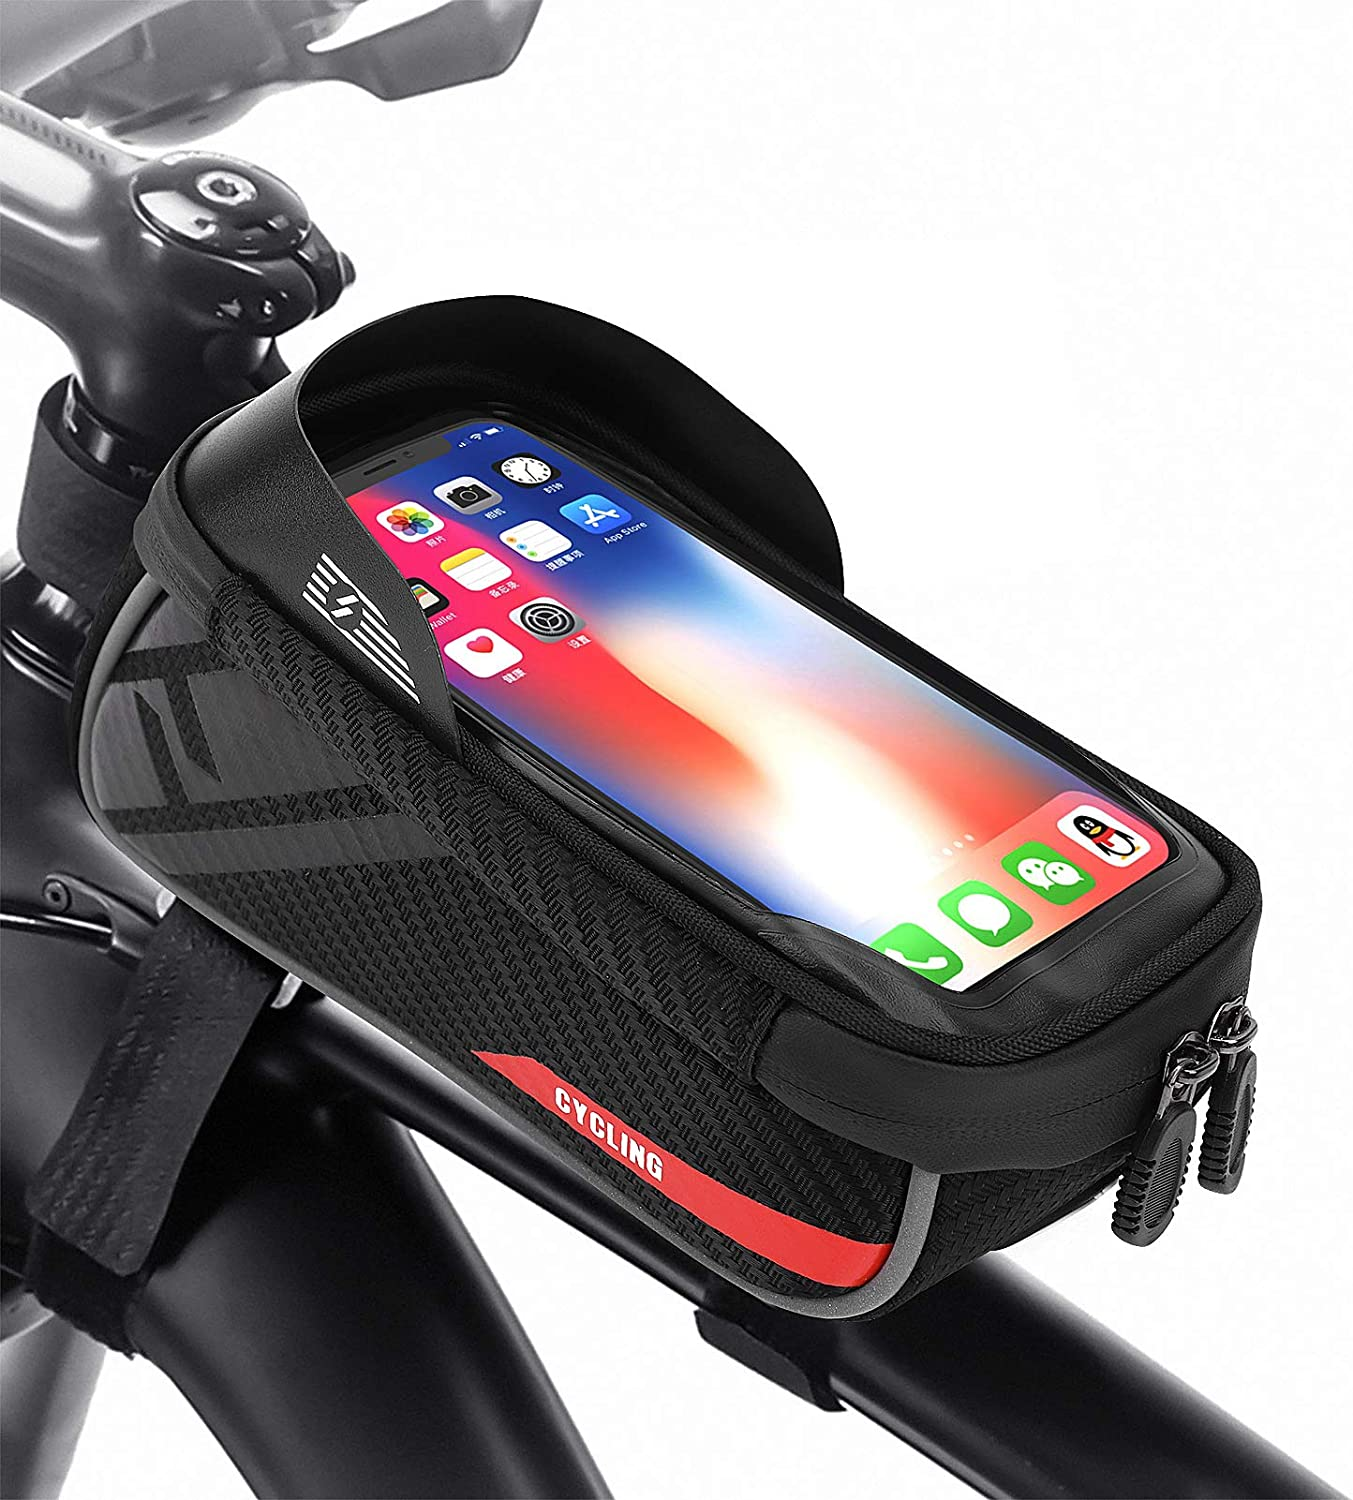 Foolerba Bike Frame Bag Bike Pouch Bag Waterproof Cycling Phone Mount Bag With Touch Screen Holder Case Bike Phone Bag Compatible With Iphone X Xs Max Xr 8 7 Plus Under 6 5inch Amazon Co Uk Sports